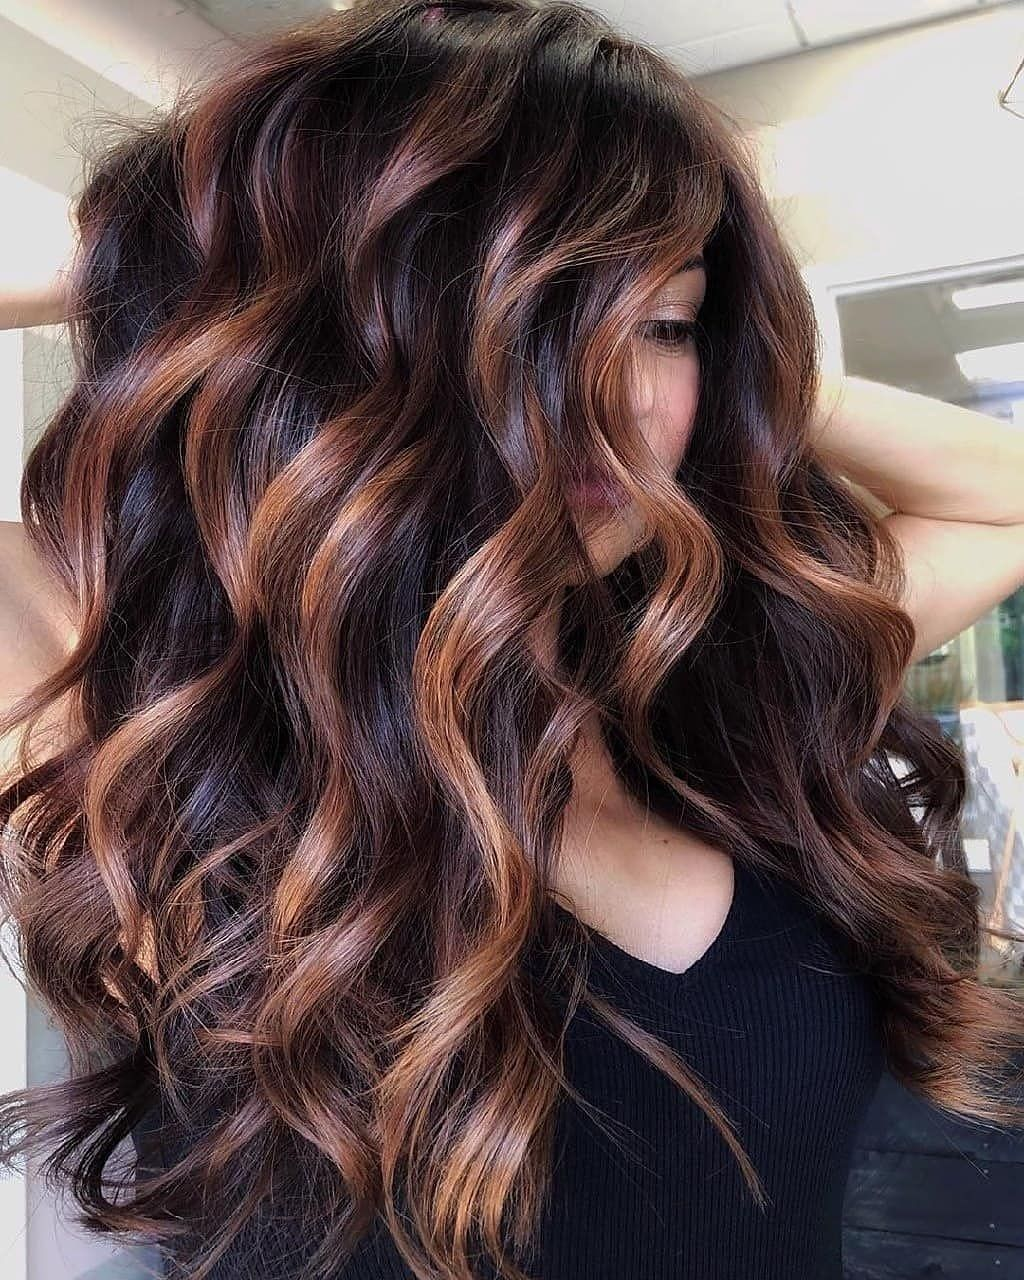 Hairfy Hair Tutorials On Instagram 1 2 3 4 Or 5 Follow Us Hairfy For More Via Tabetha And Co In 2020 Red Balayage Hair Brunette Hair Color Hair Color Unique